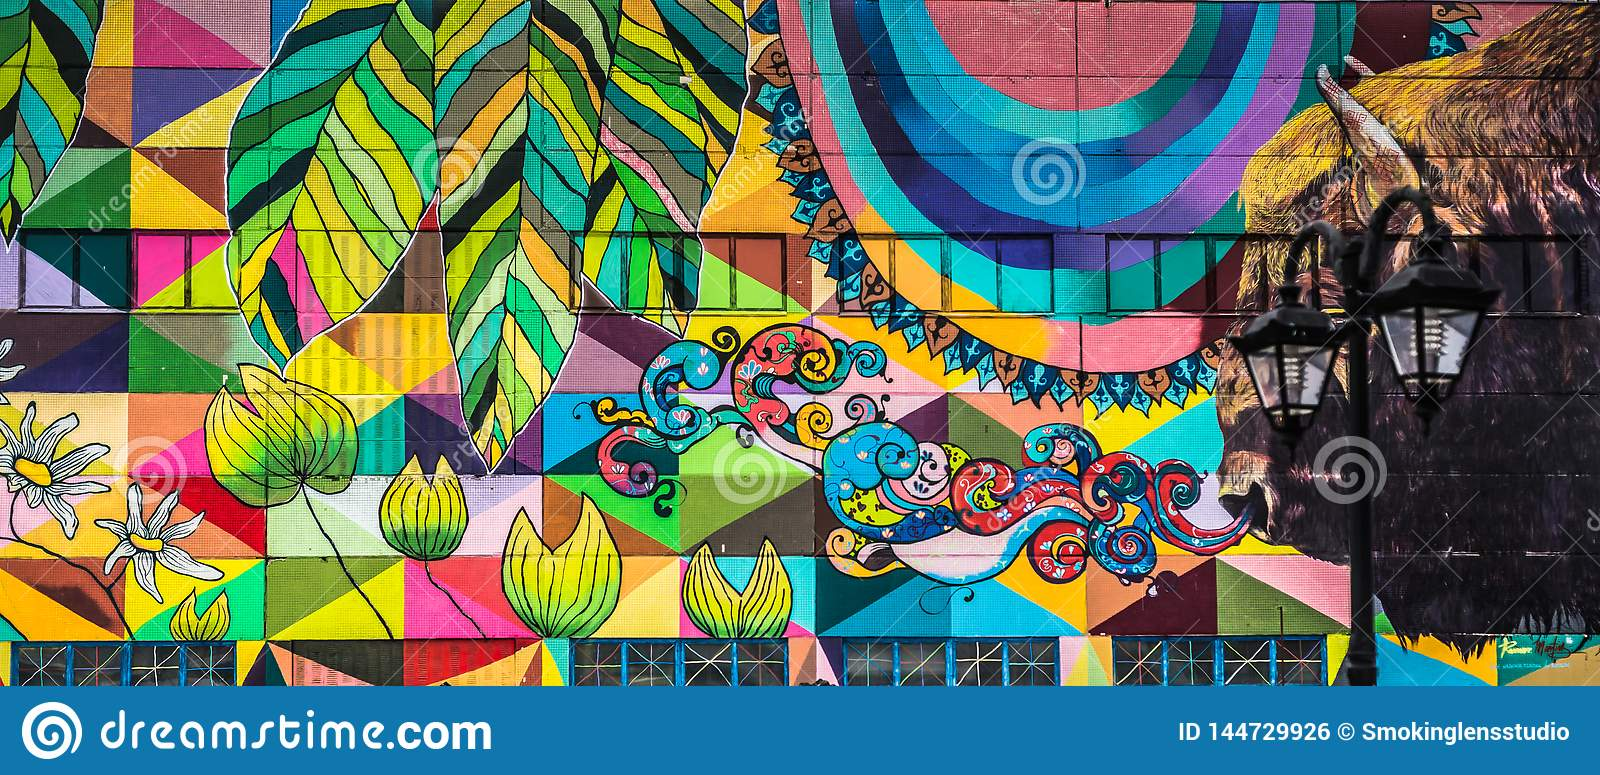 Minsk is full of graffiti artworks specially ouside the center of the city